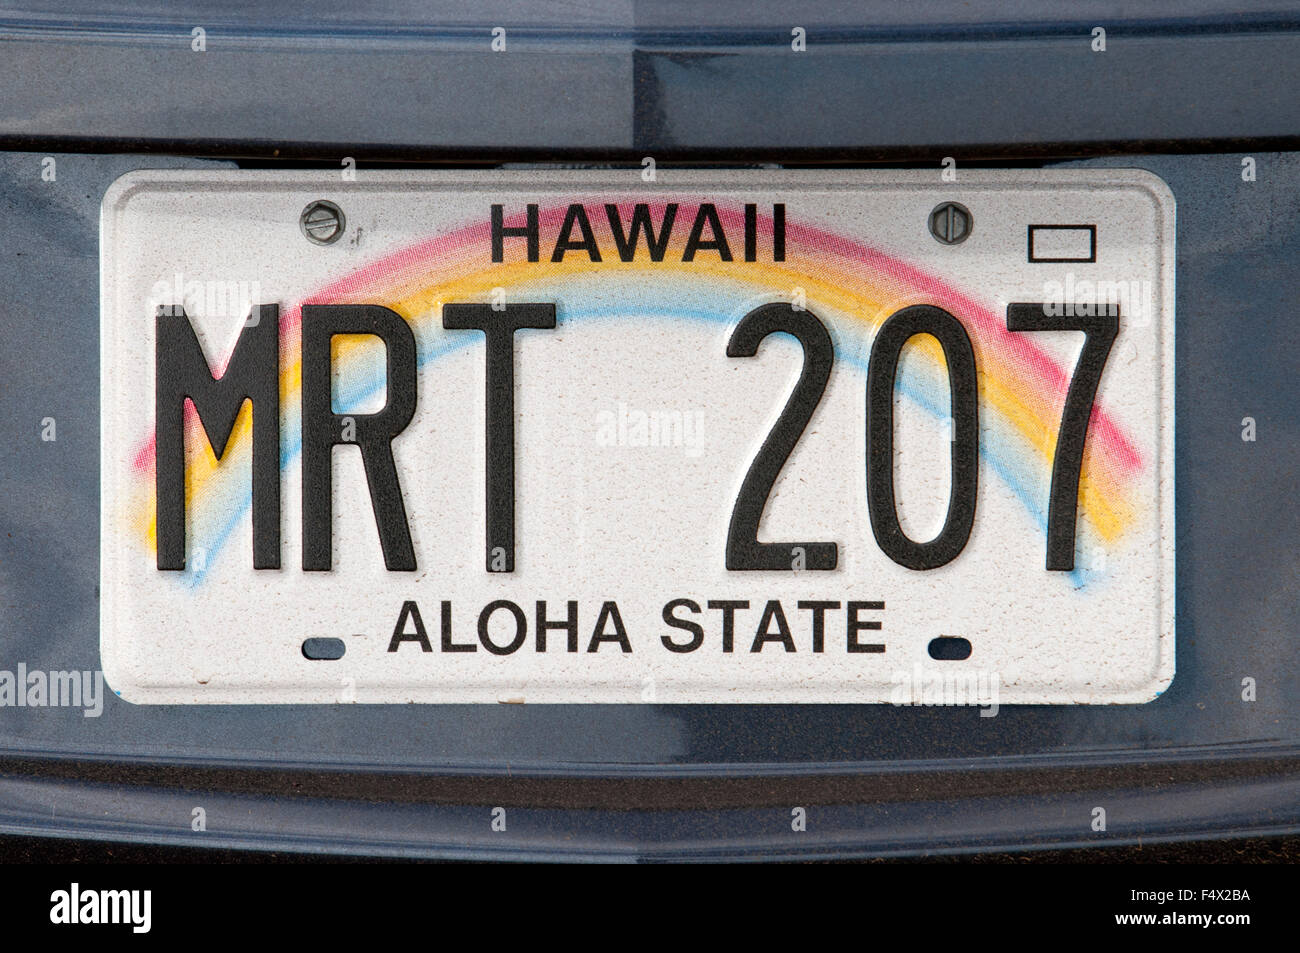 State of hawaii motor vehicle registration vehicle ideas for National motor vehicle license organization